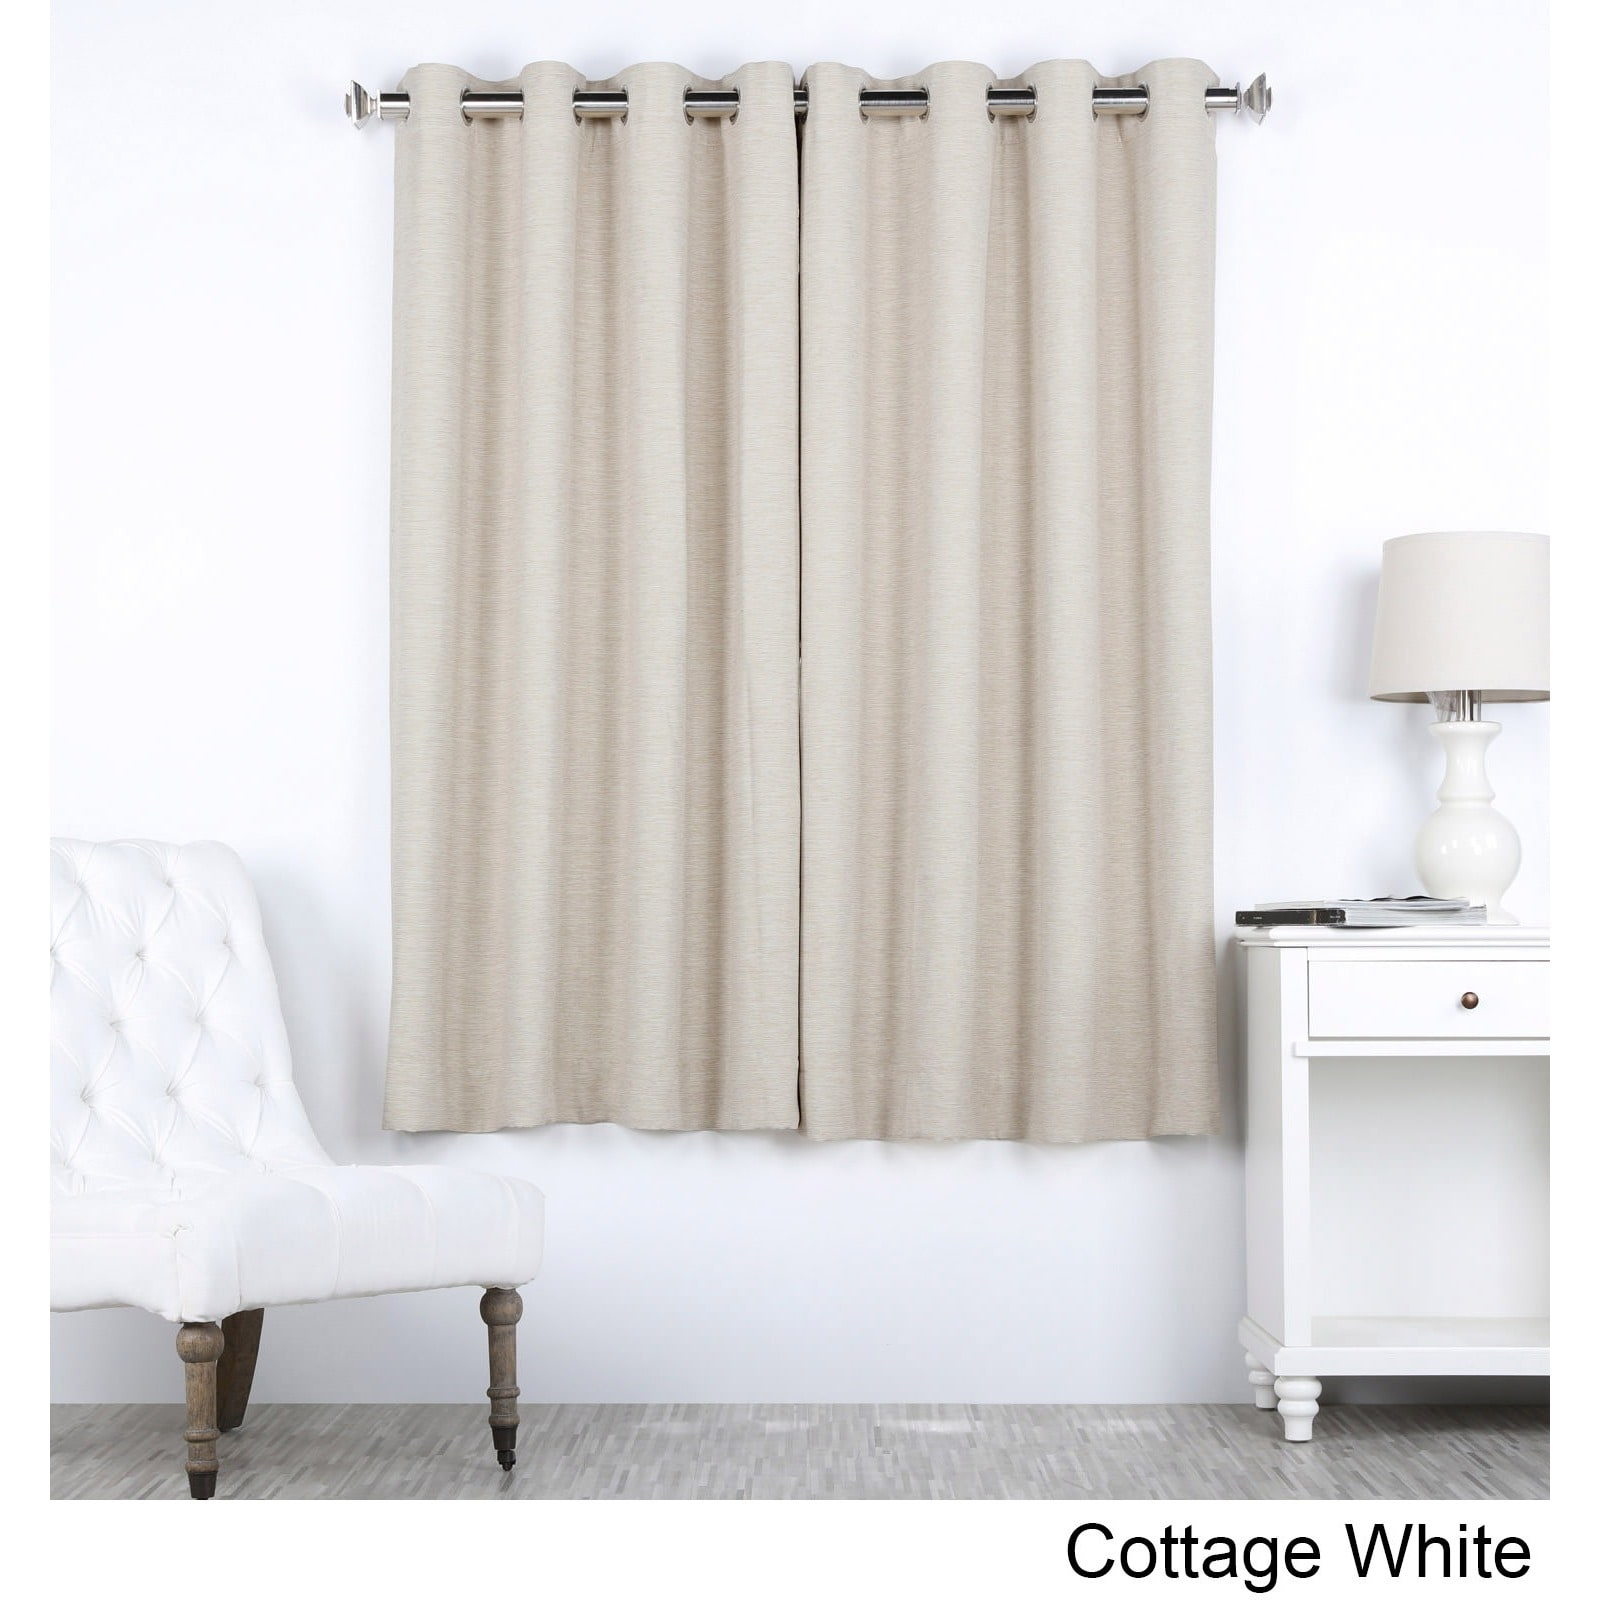 decoration photo blackout full size for windows ritva ideas of white ikea curtain curtains curtainslinen linen blend wonderful whiten beauty